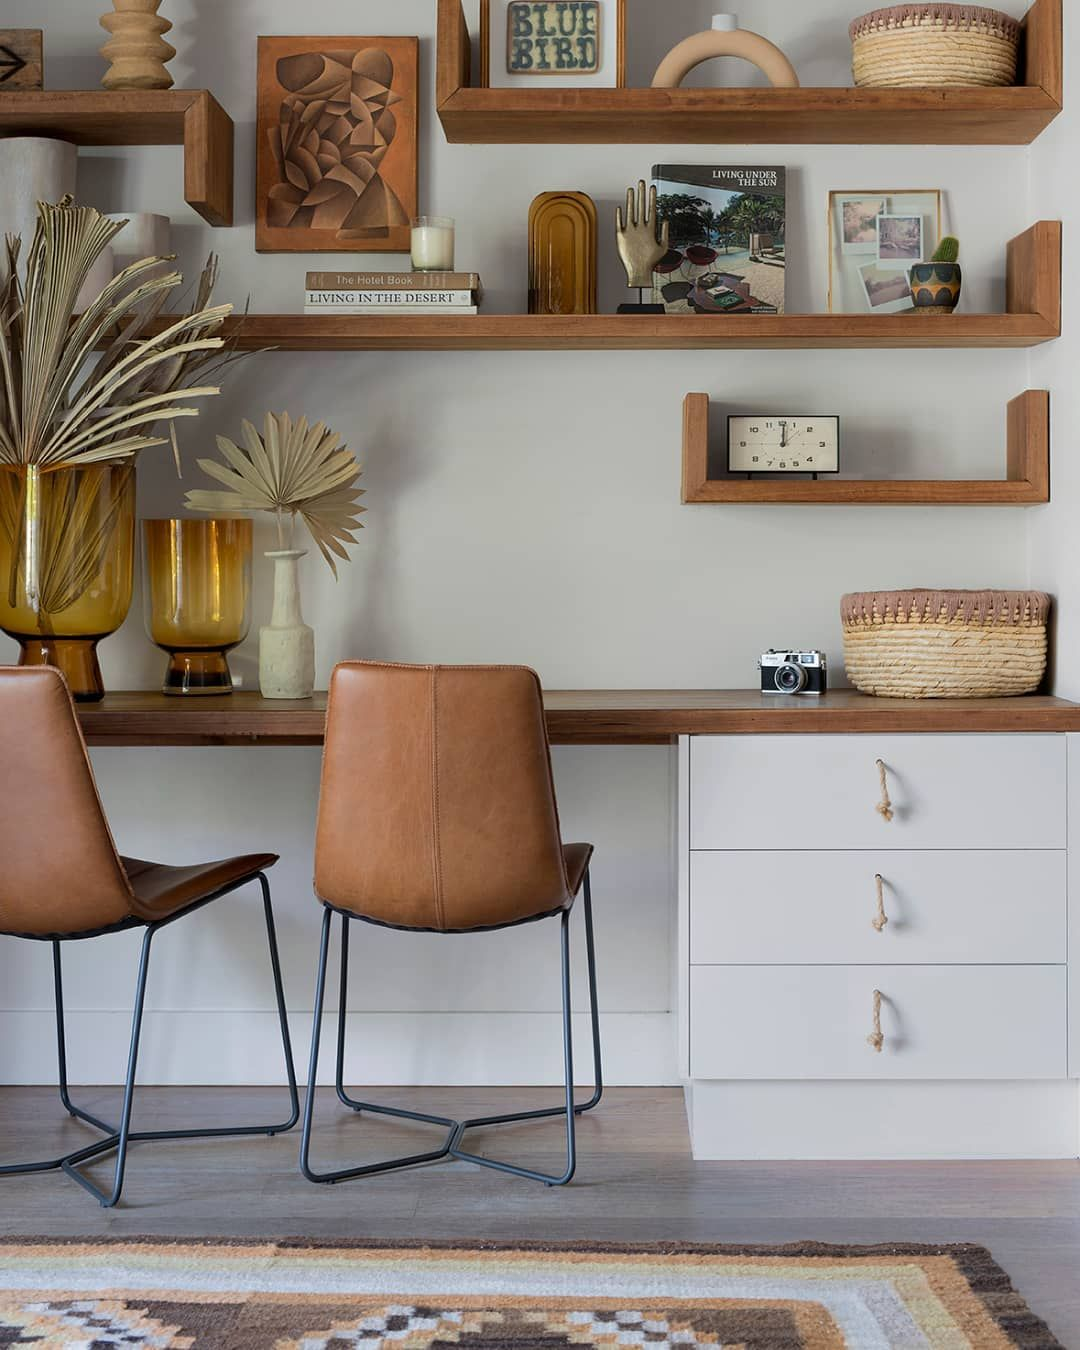 West Elm Australia On Instagram Earthy Tans Create A Natural Sense Of Ease In Our Home Away From Home Atlant In 2020 Home Office Shelves Leather Dining Chairs Home